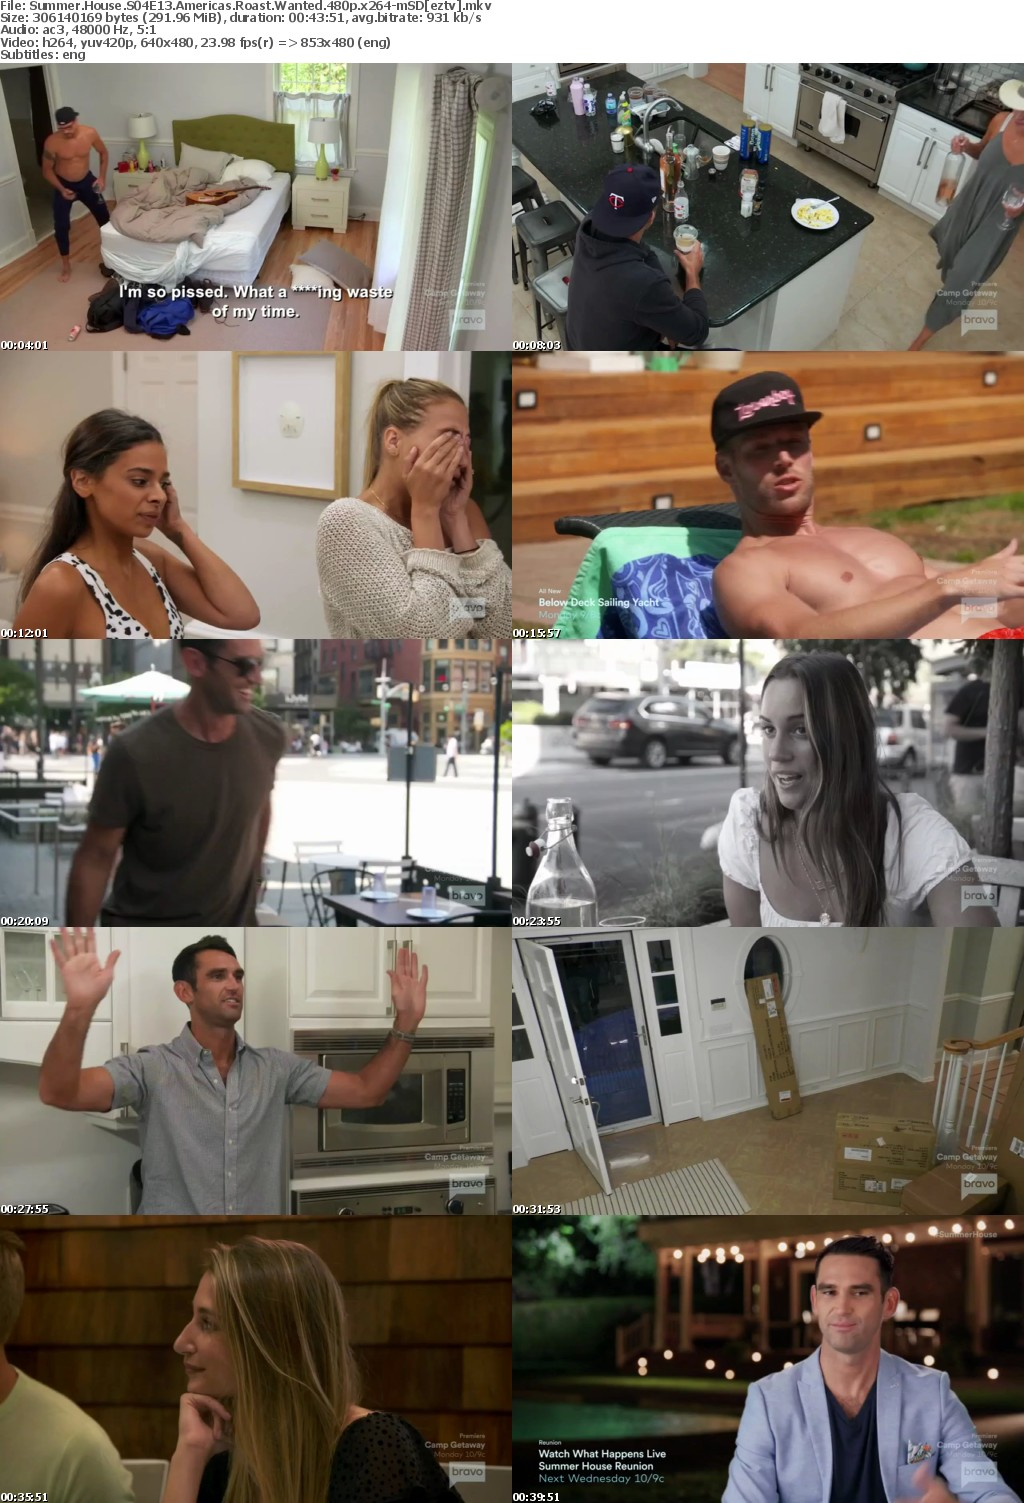 Summer House S04E13 Americas Roast Wanted 480p x264-mSD